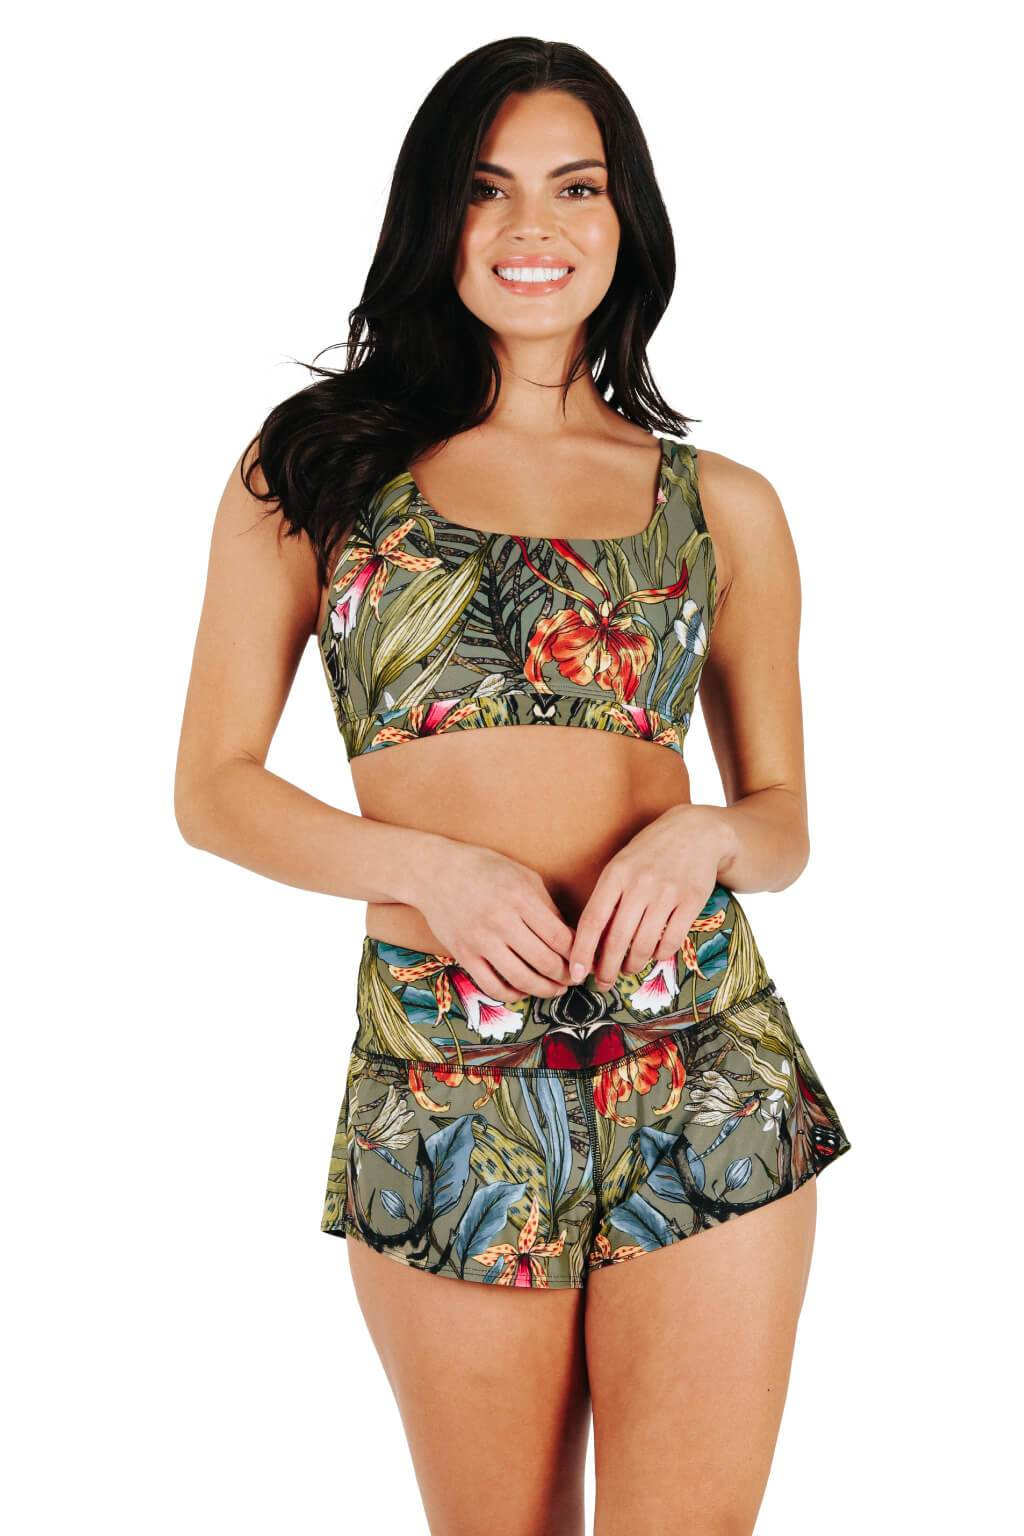 Yoga Democracy Women's Eco-friendly flow everyday running Shorts with 3 inch inseam and low-rise waistband in Green Thumb bugs print made from post consumer recycled plastics